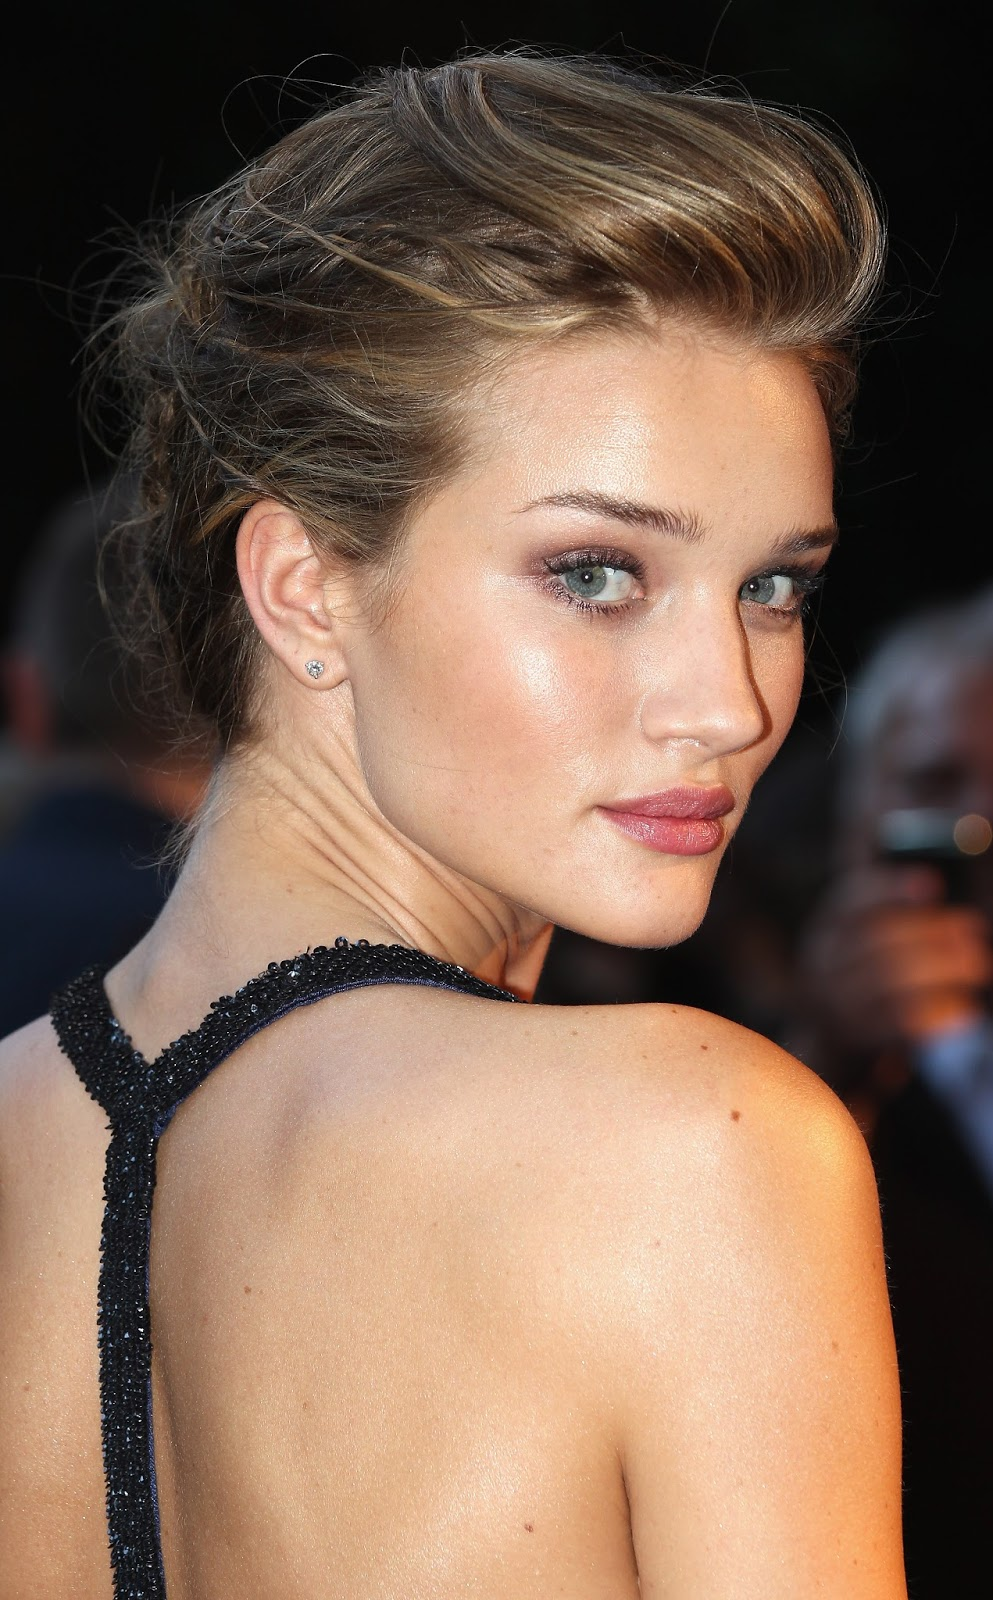 FHM's World's Sexiest Woman 2015 Rosie Huntington-Whiteley Full HD Images, Photos & Wallpapers